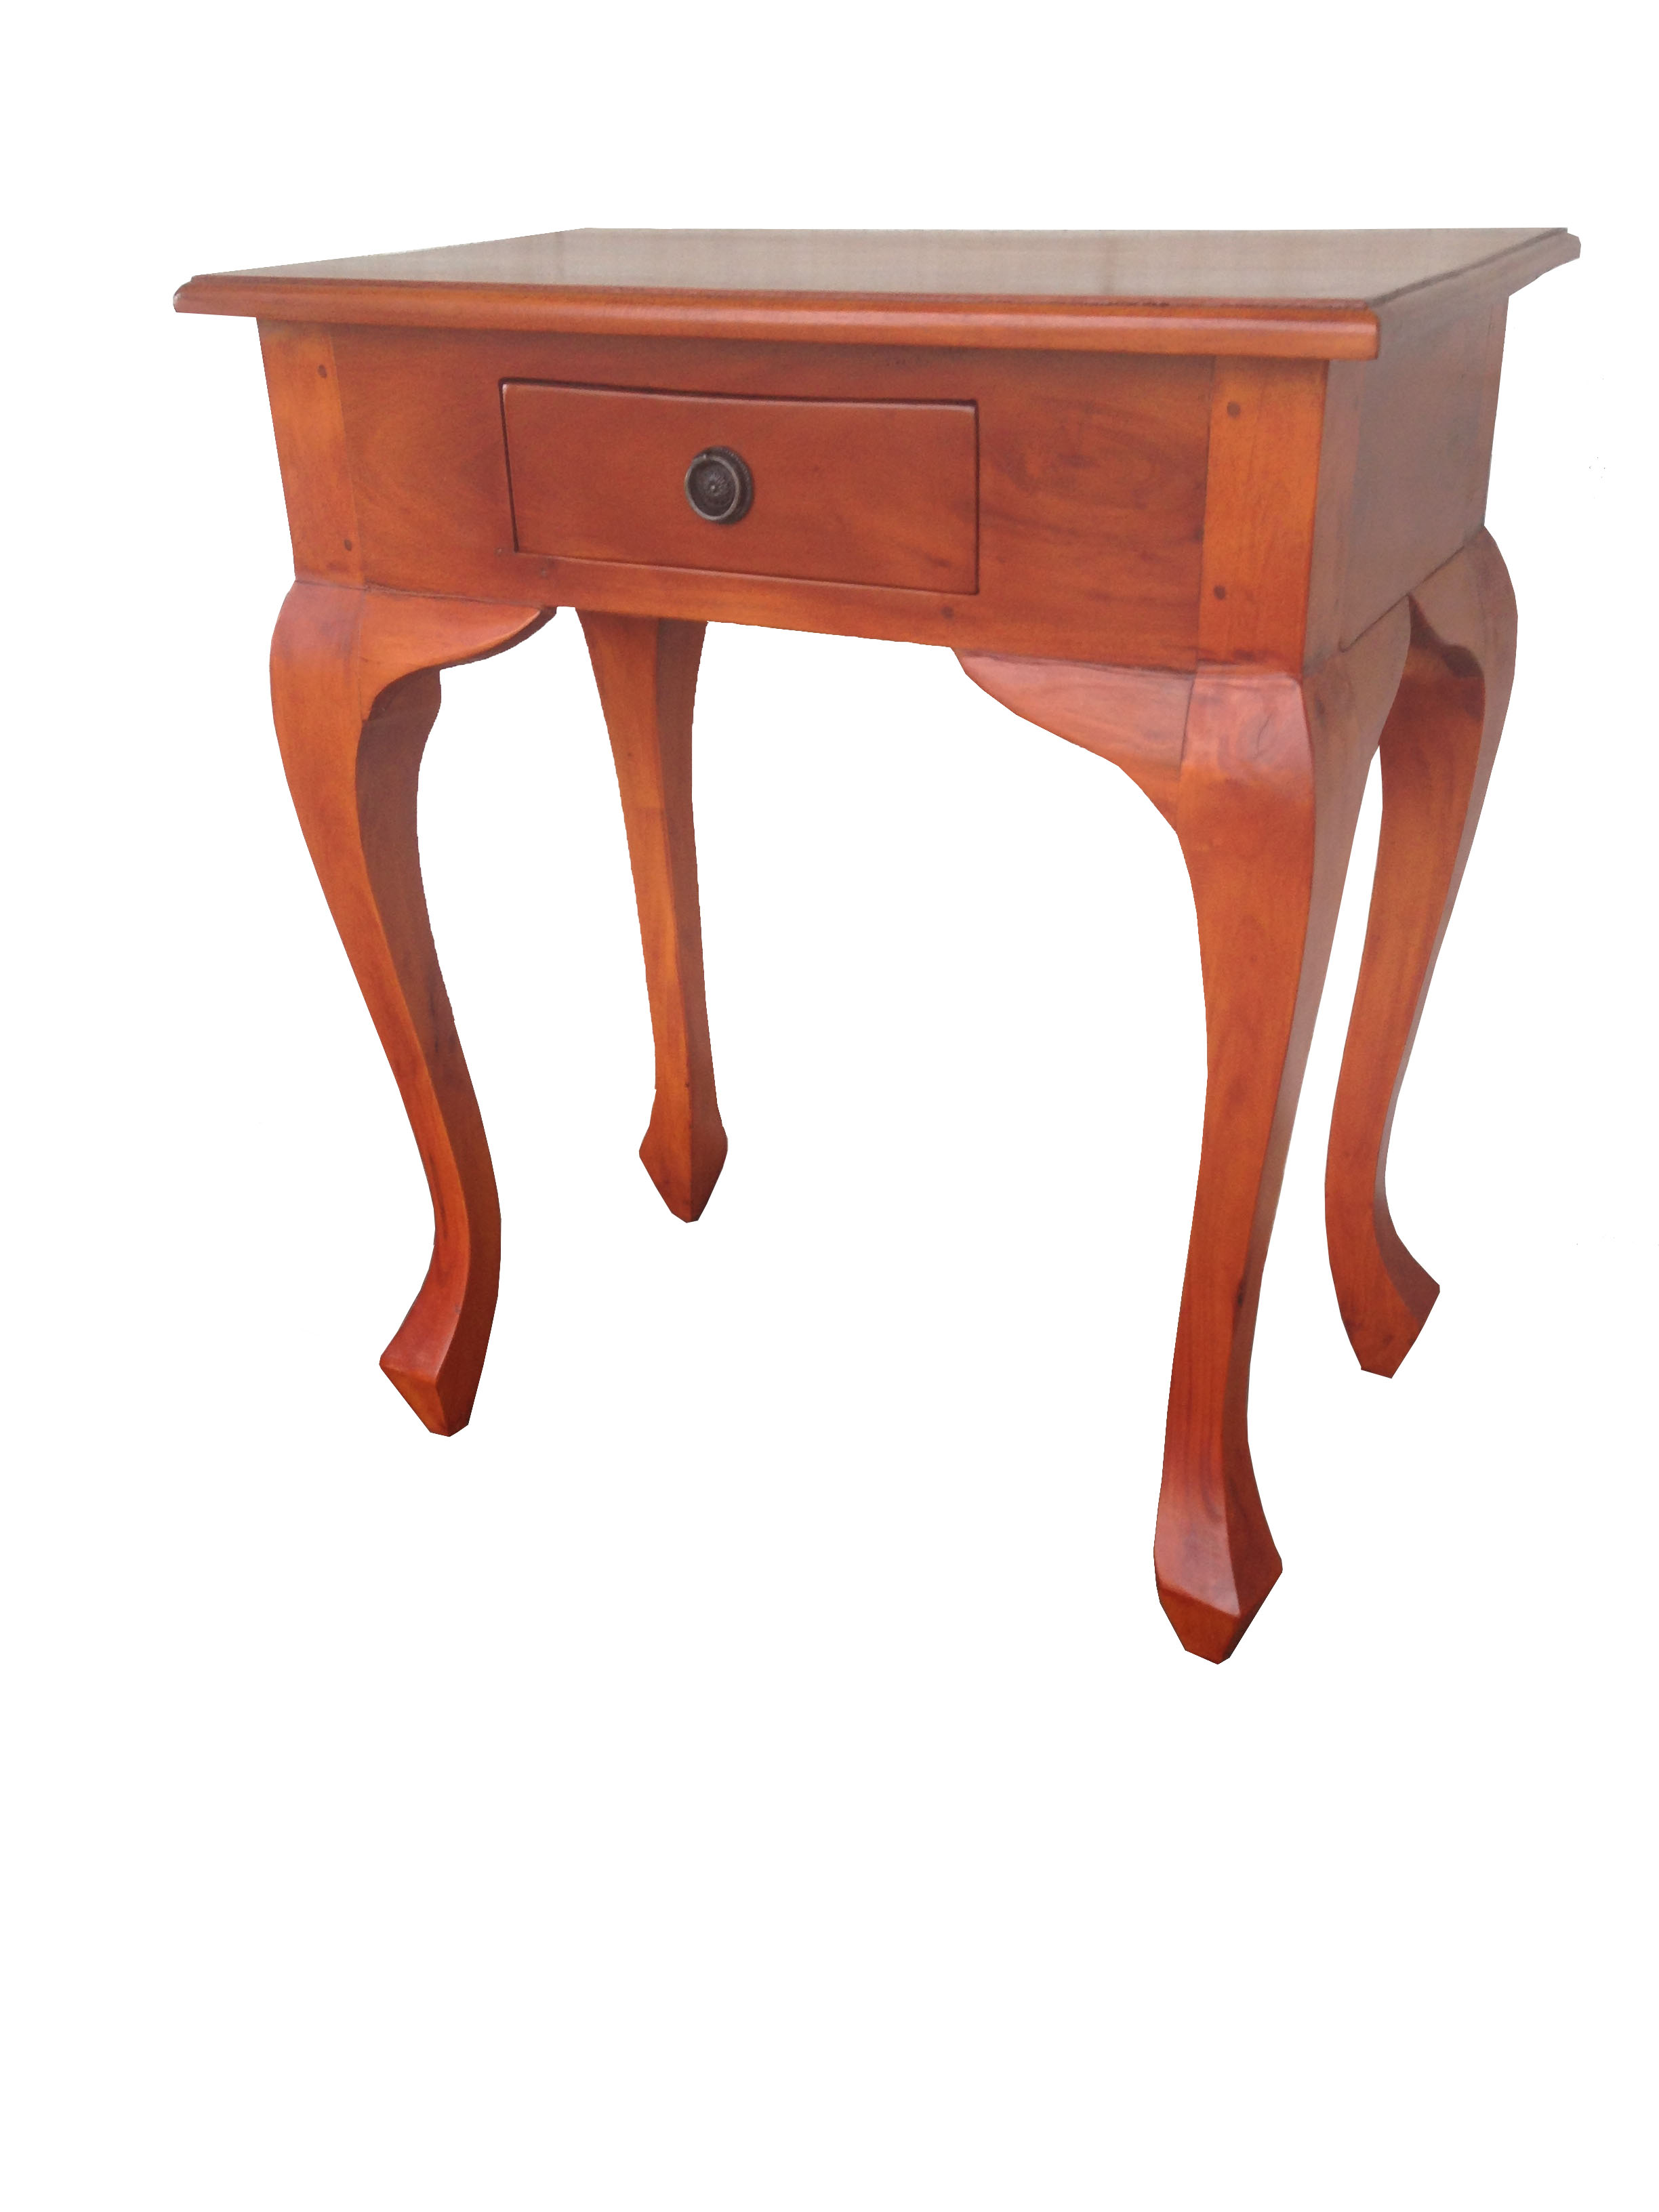 hall table furniture. Hall Table Queen Ann Legs 1 Drw Furniture